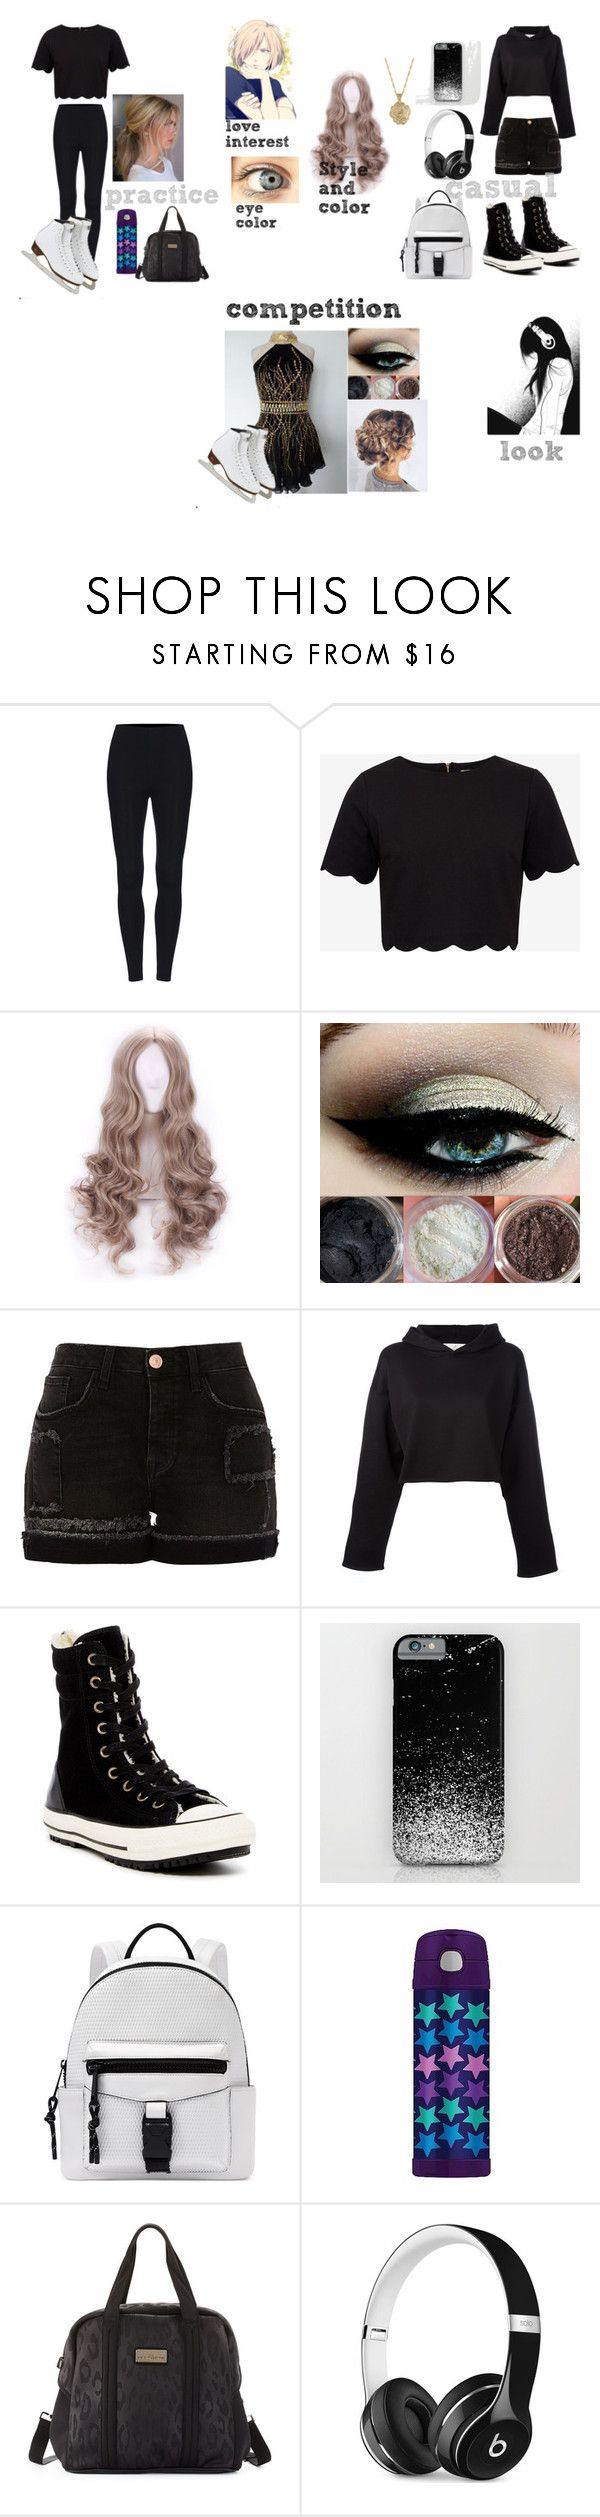 """Yuri on ice OC - Polyvore"" by darkness-huntress on Polyvore featuring Ted Baker, River Island, Golden Goose, Converse, Nine West, Thermos, adidas, Beats by Dr. Dre, 2028 y country"